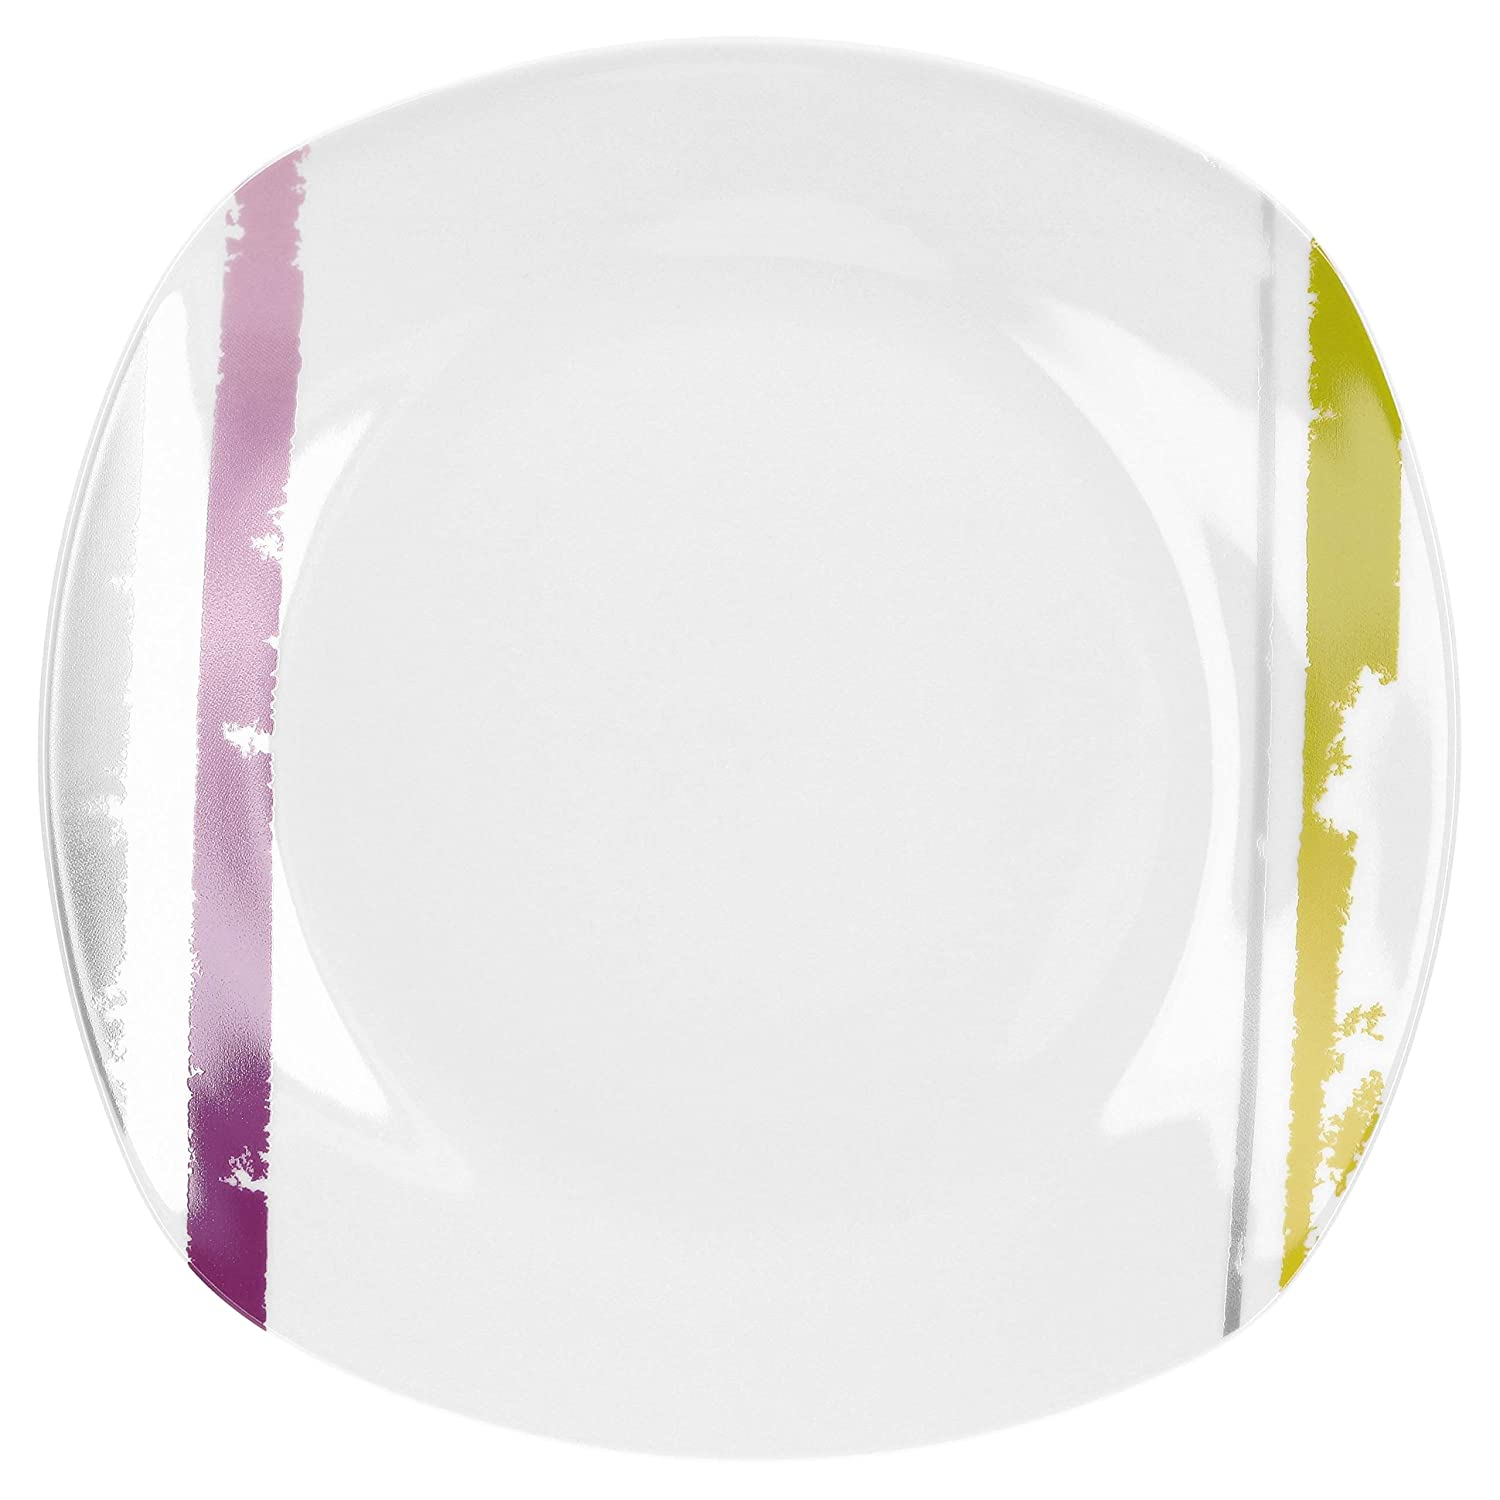 VAN WELL Lucia I - Plato Llano (25 x 25 cm, Porcelana): Amazon.es ...